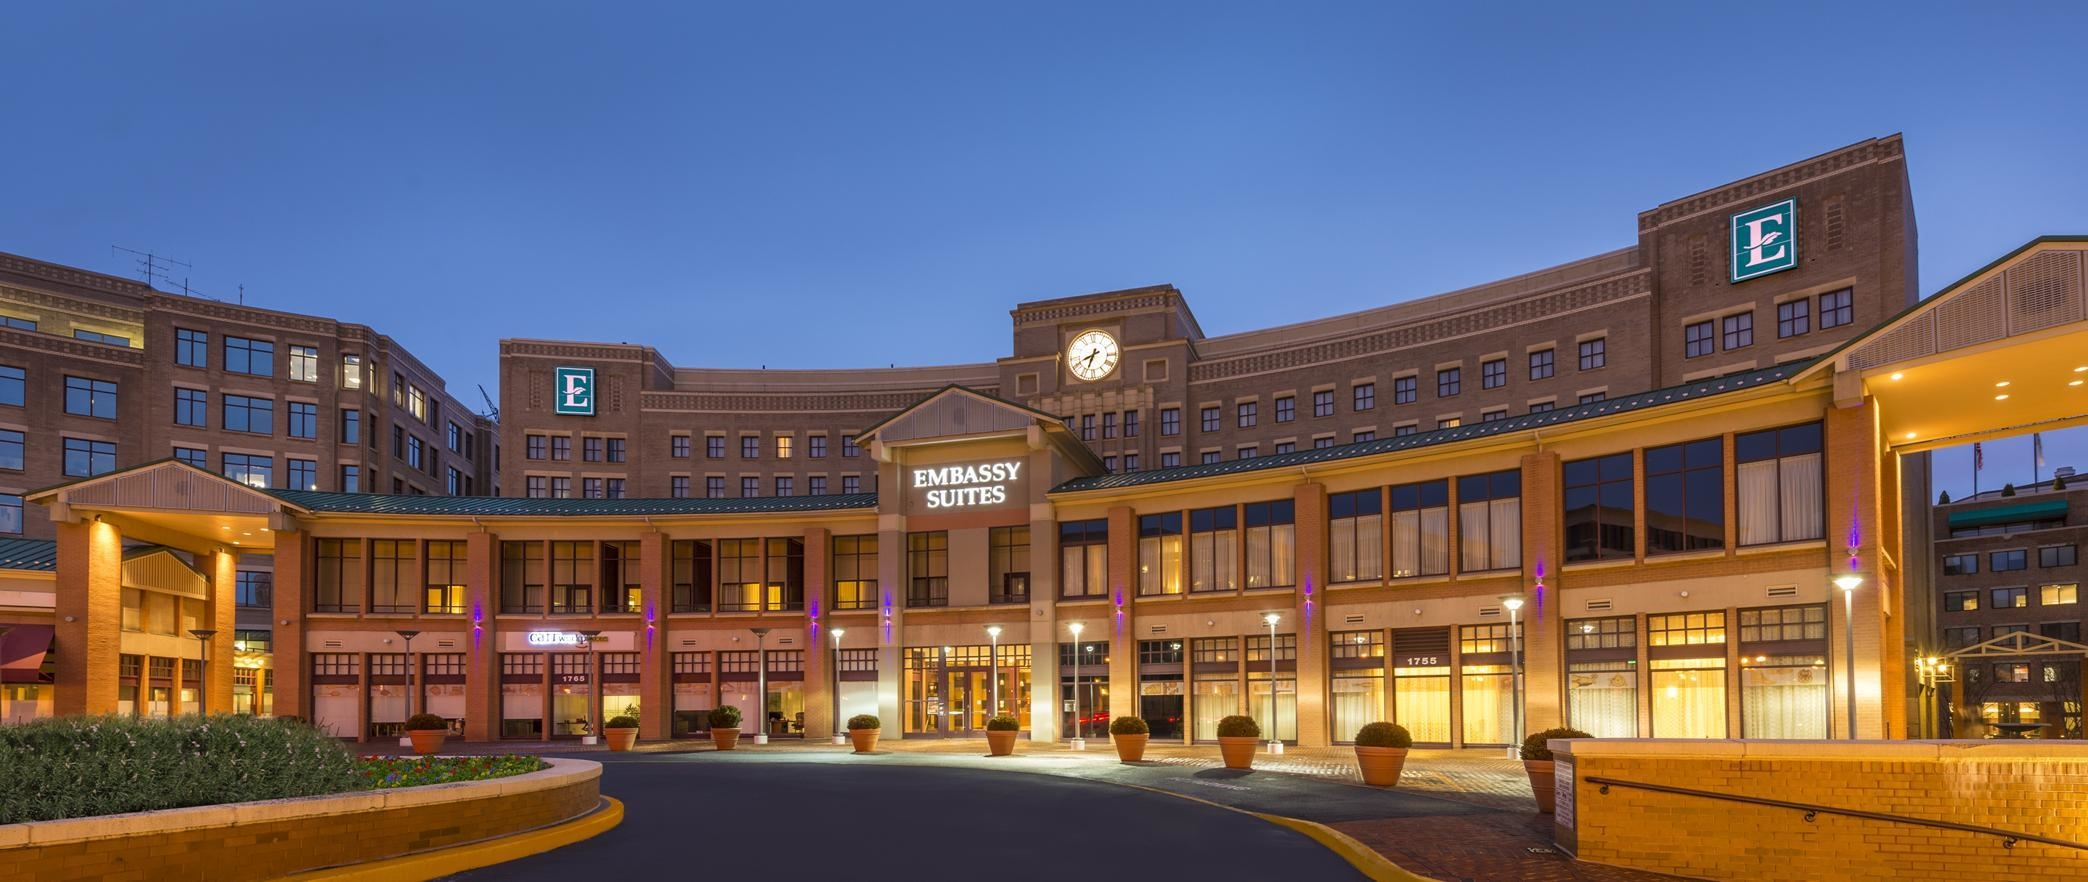 Embassy suites by hilton alexandria old town alexandria virginia va for Hilton garden inn old town alexandria